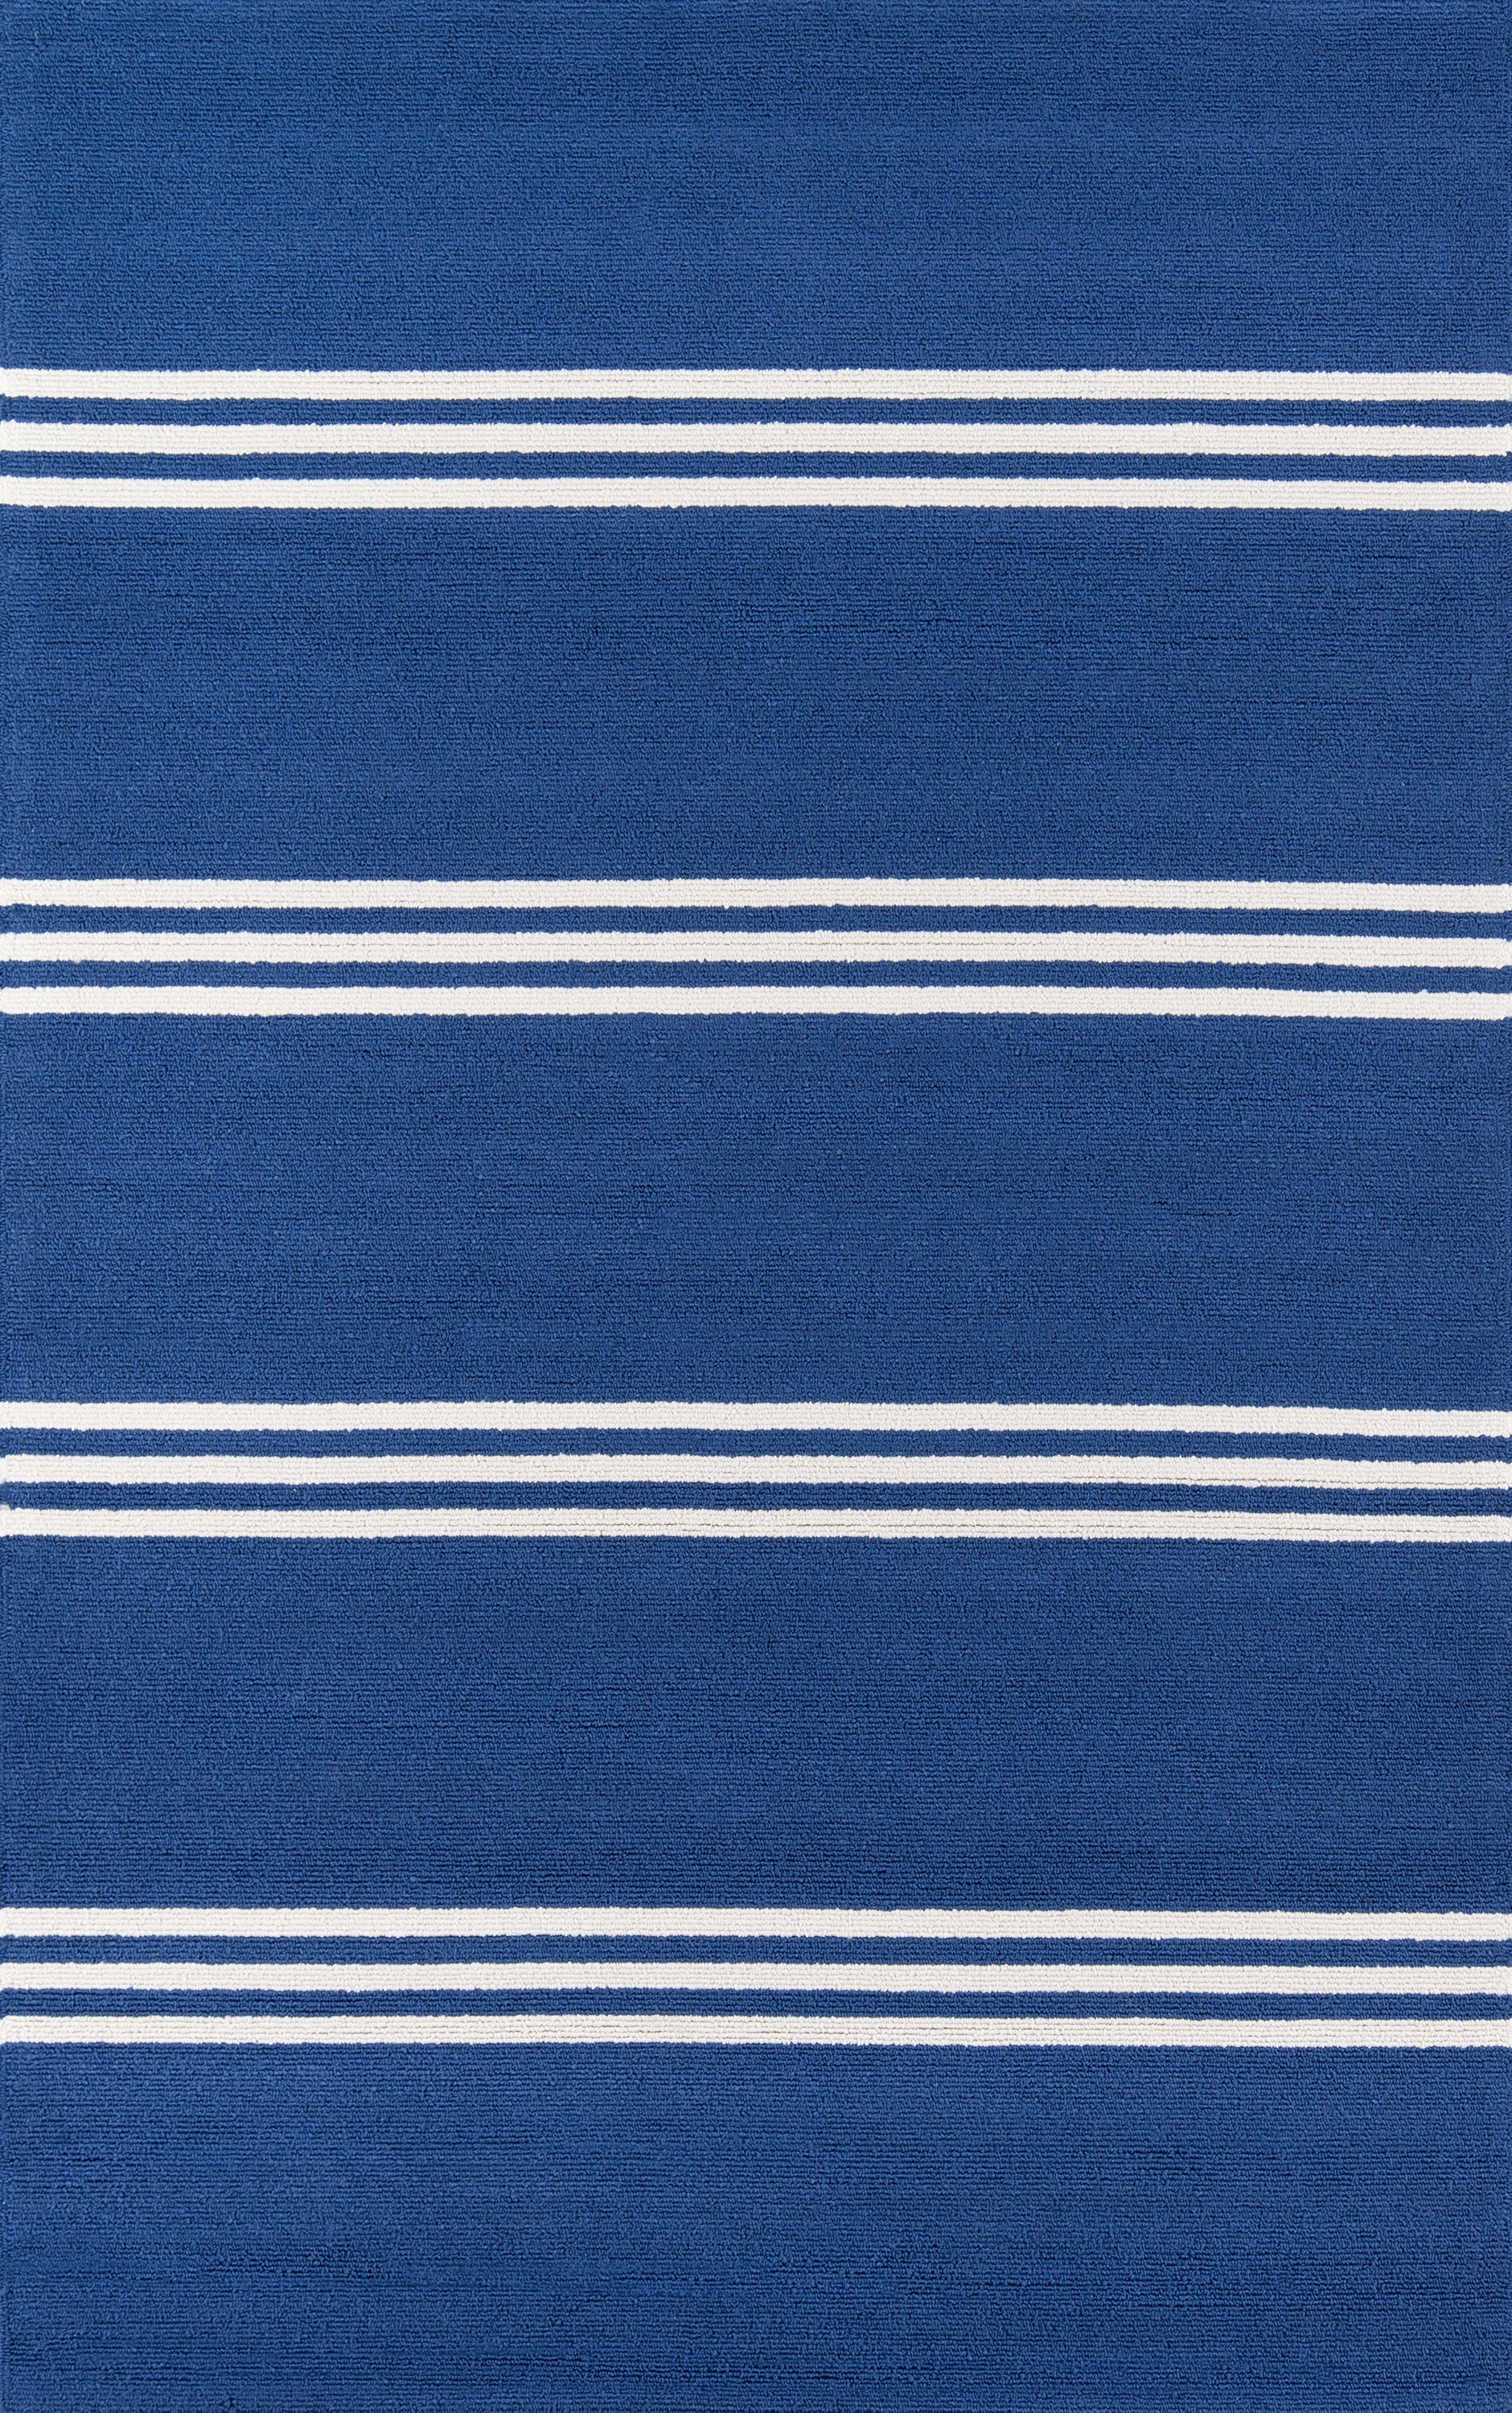 Rectangle, Round Blue Striped Hand Hooked Synthetics Contemporary recommended for Bedroom, Bathroom, Outdoor, Dining Room, Office, Hallway, Living Room